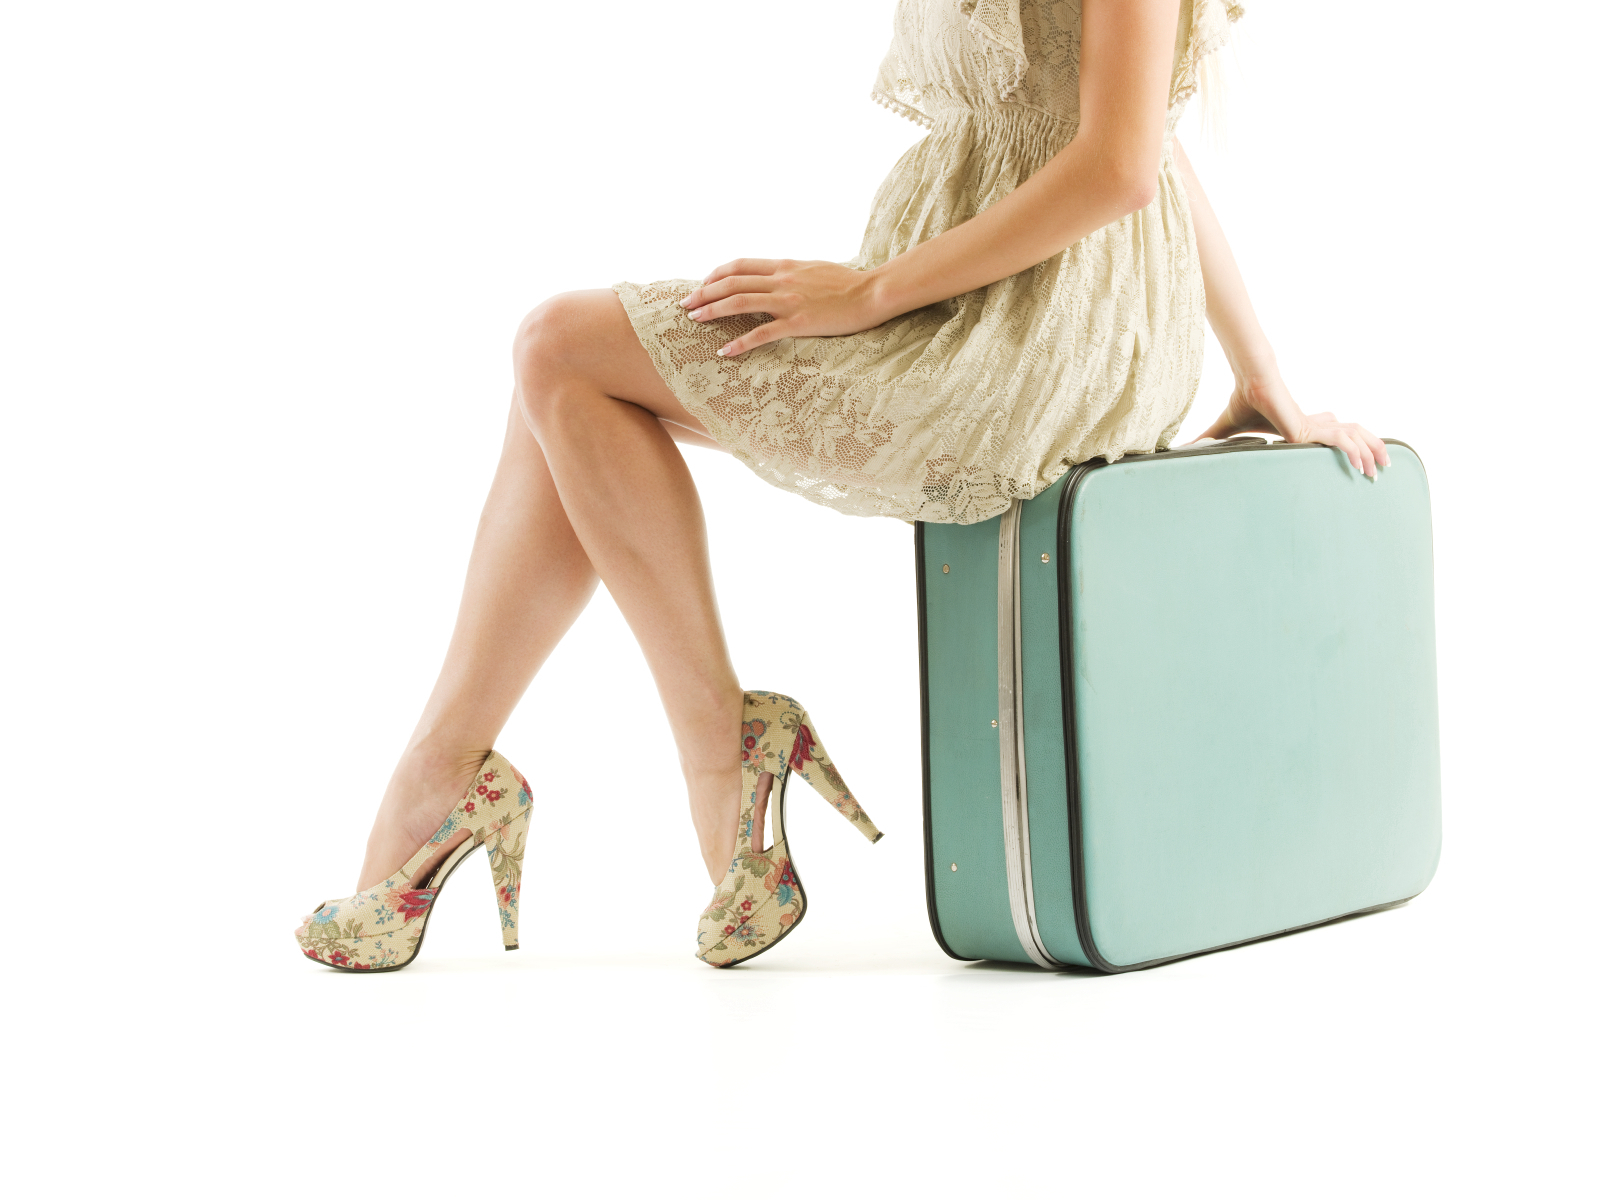 Classy woman with suitcase ready for travel